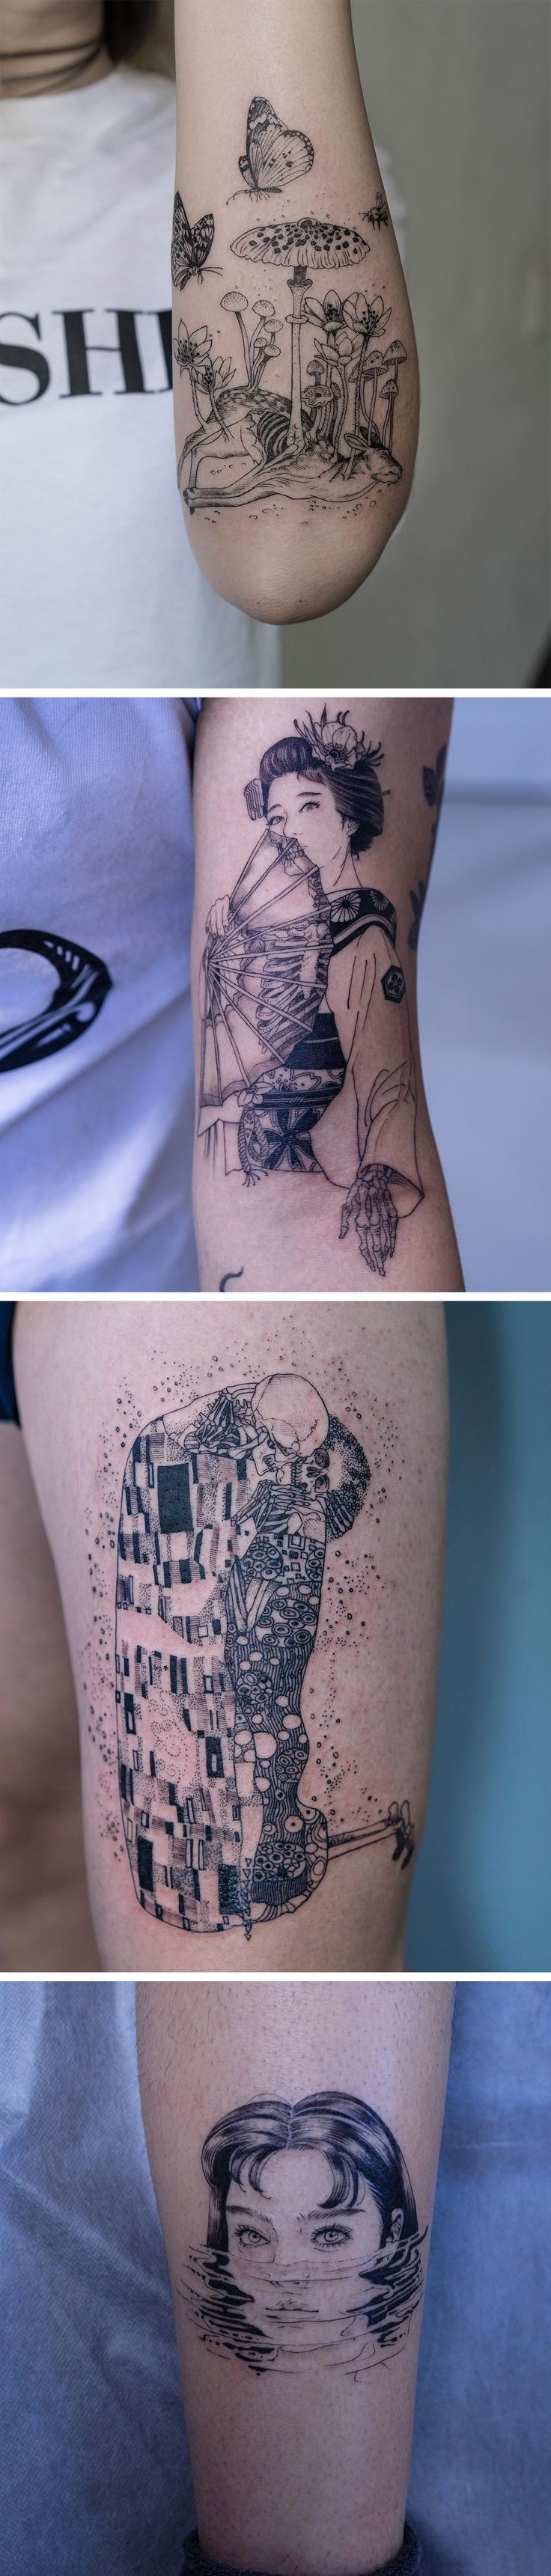 Black and White Figural Tattoos With a Macabre Twist by Korean Tattoo Artist Oozy